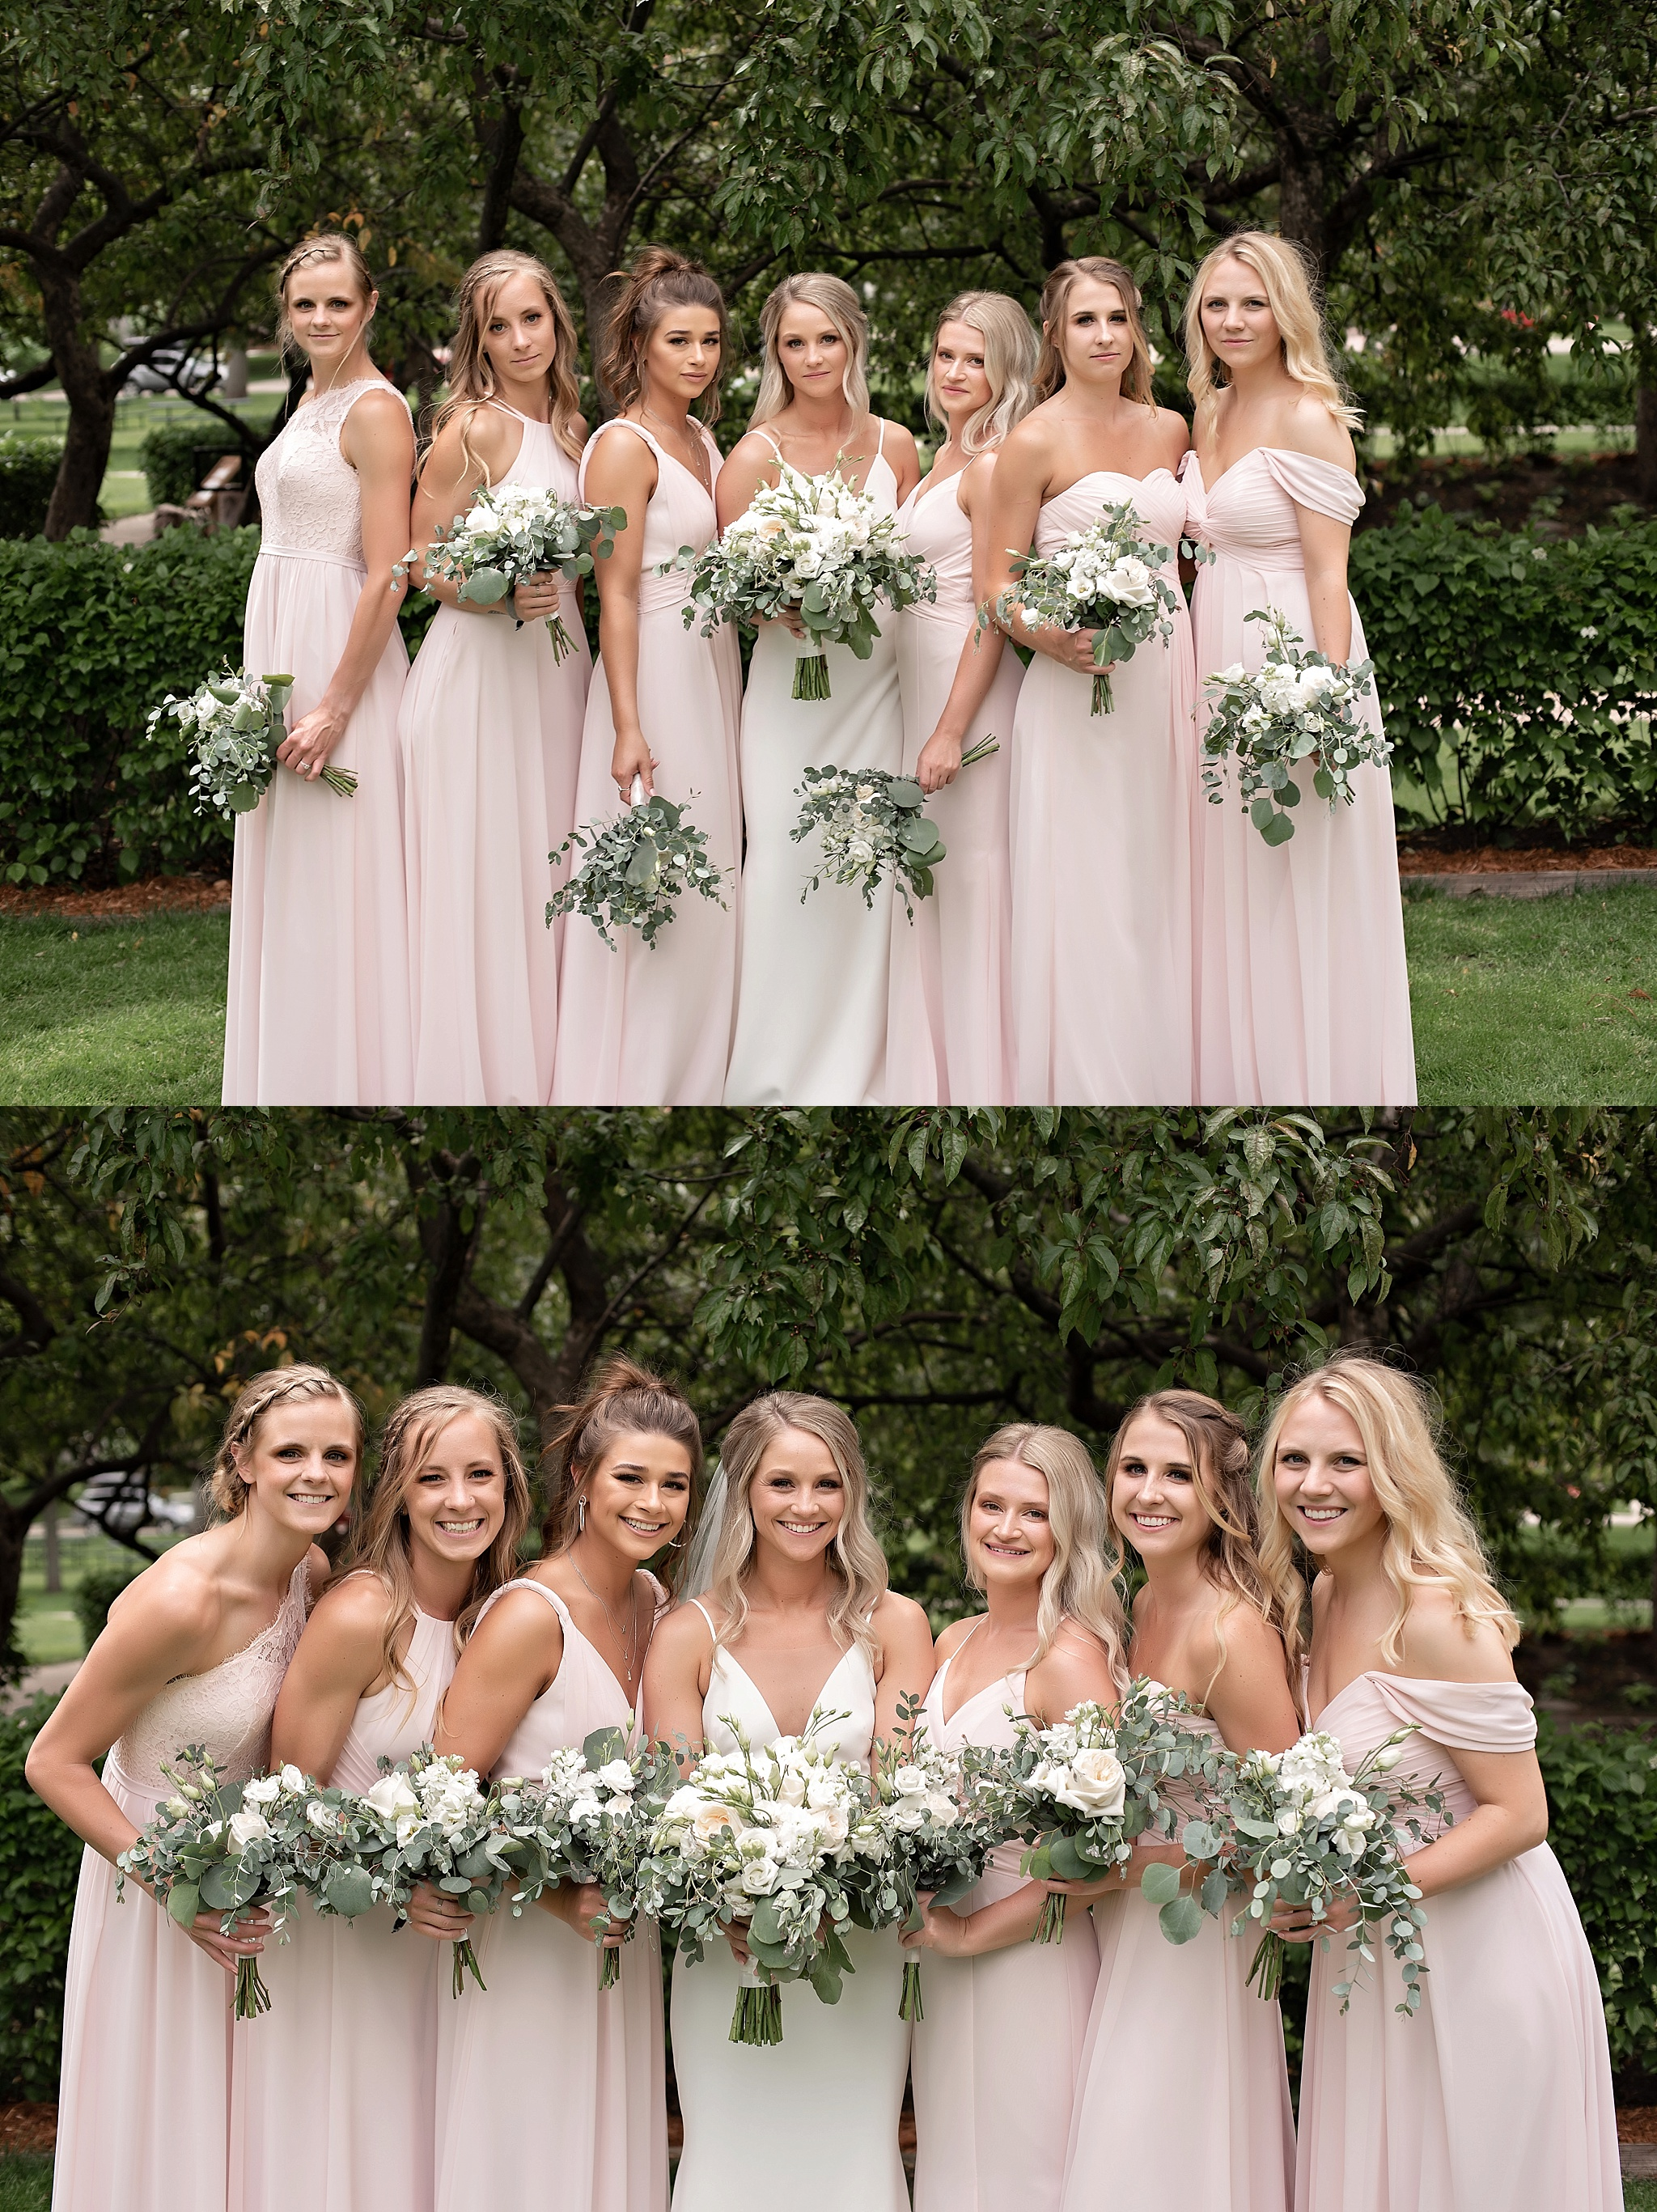 bridesmaid styles blush floor length dresses with the flower mill white florals